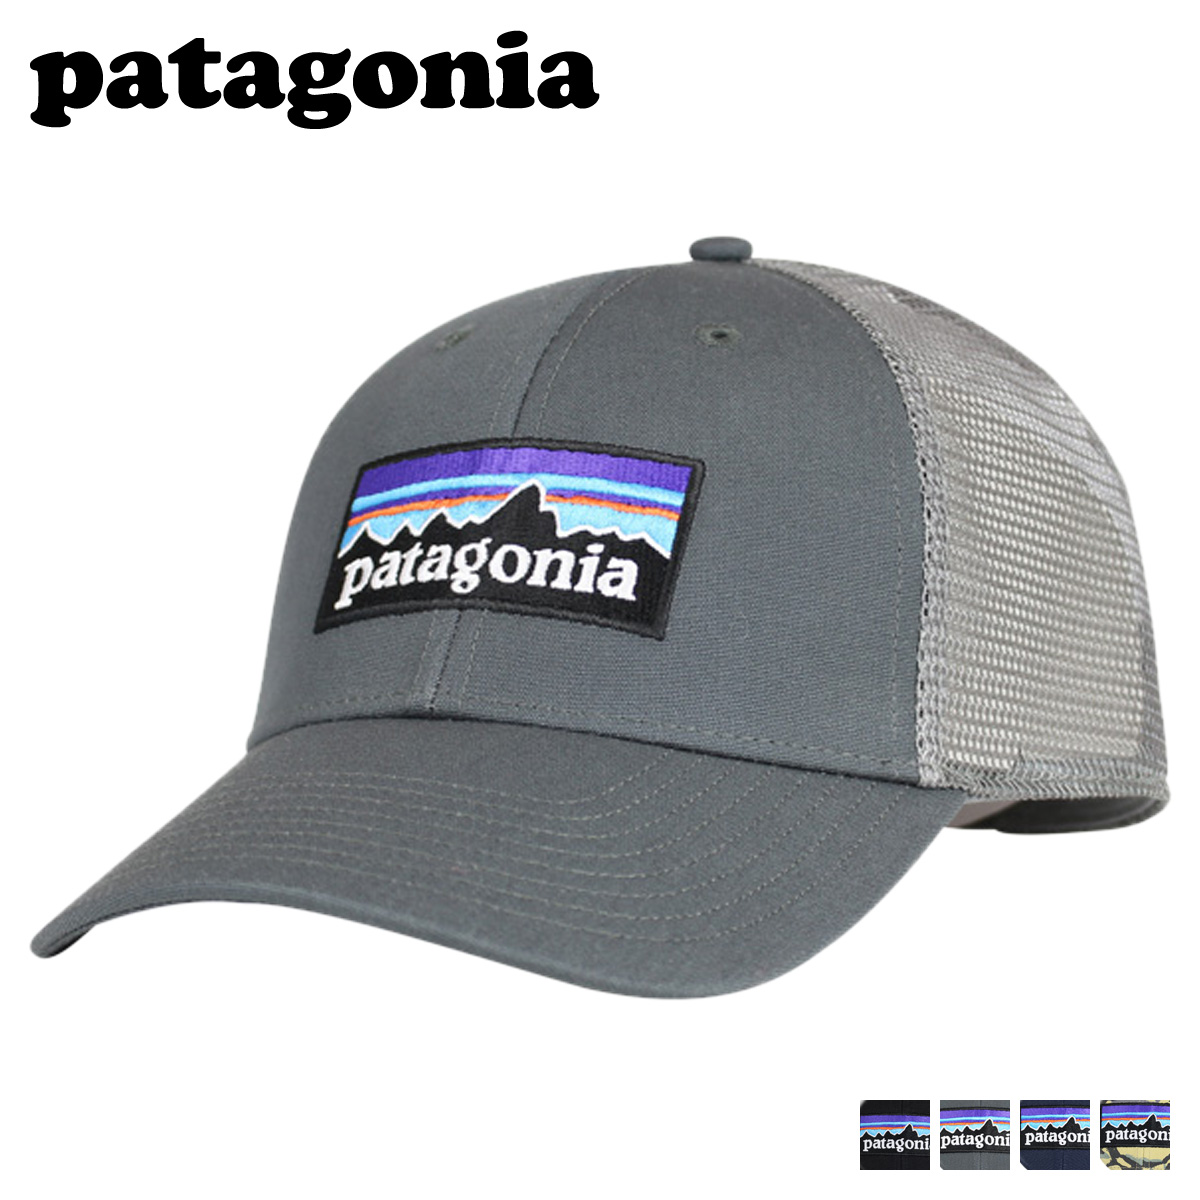 eace10b220b For image of the unexplored in the Patagonia has earned the nickname